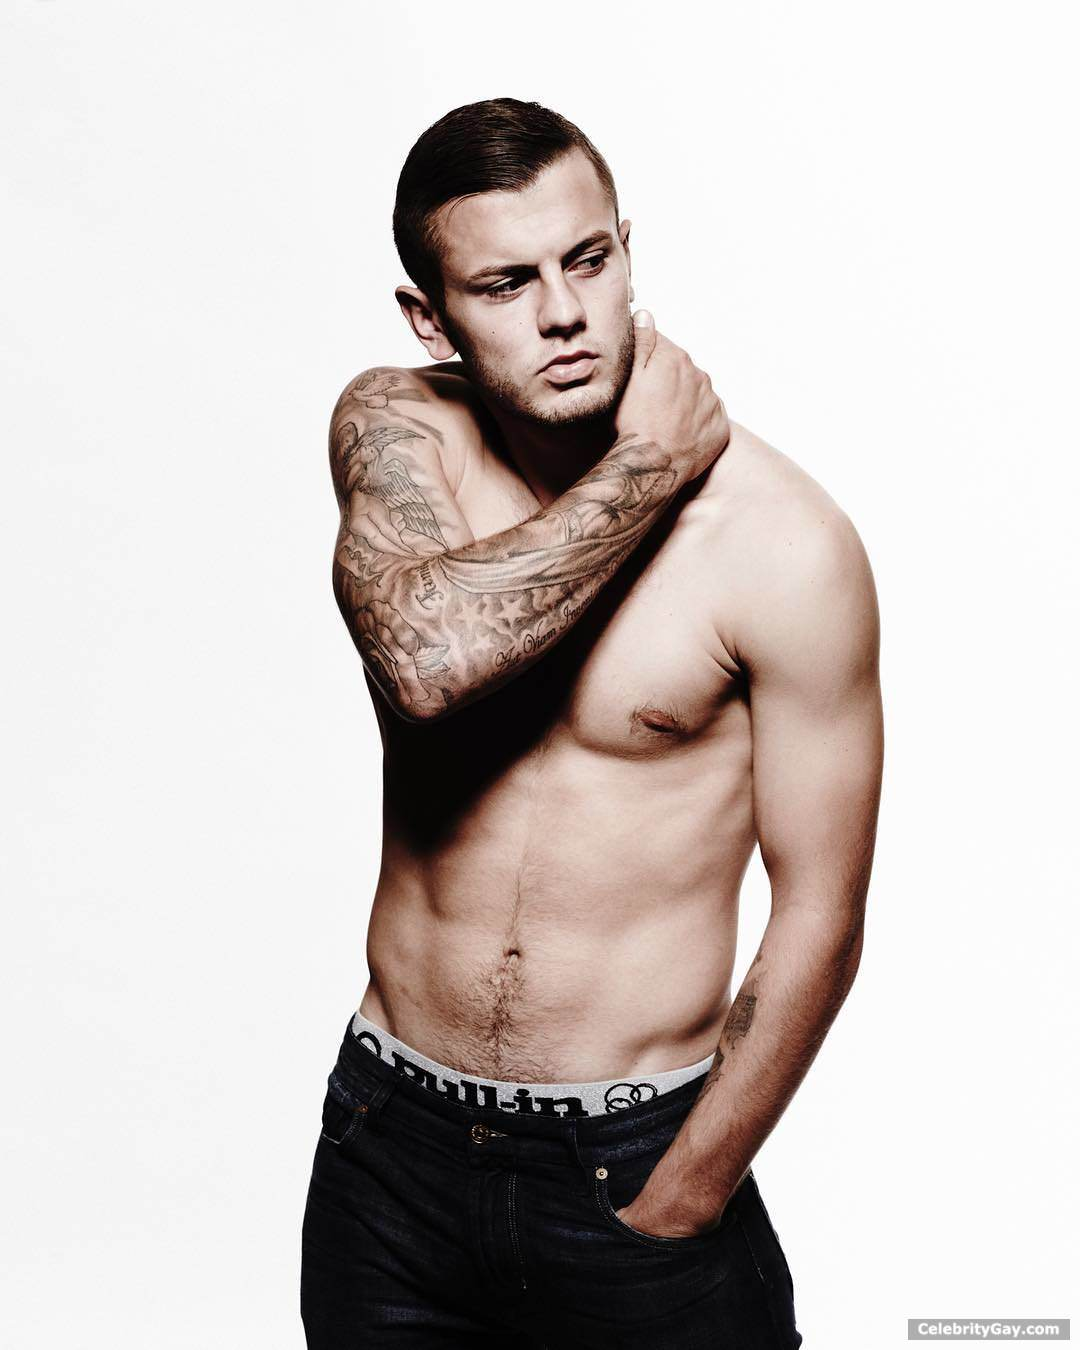 Jack Wilshere Nude - Leaked Pictures  Videos  Celebritygay-1607